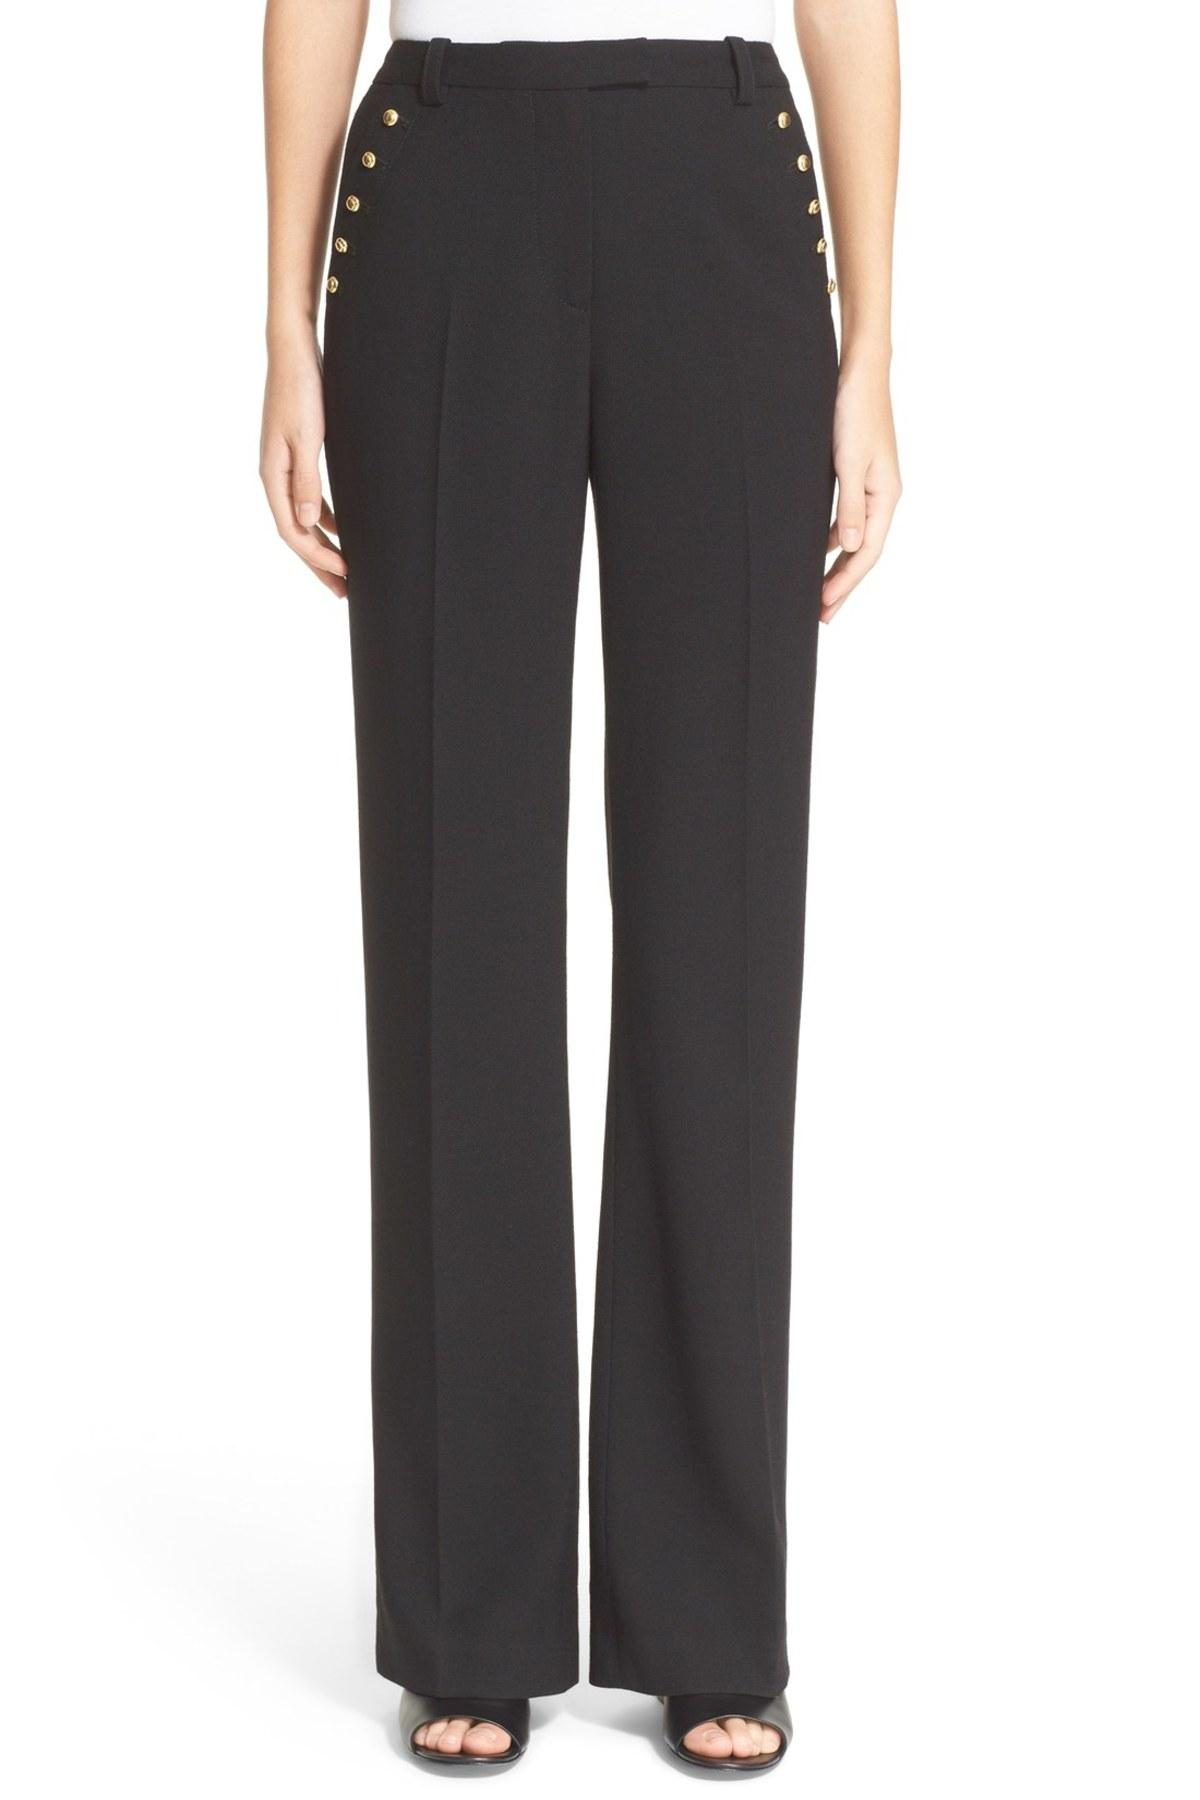 3.1 phillip lim Button Detail Pants in Black - Save 47% | Lyst